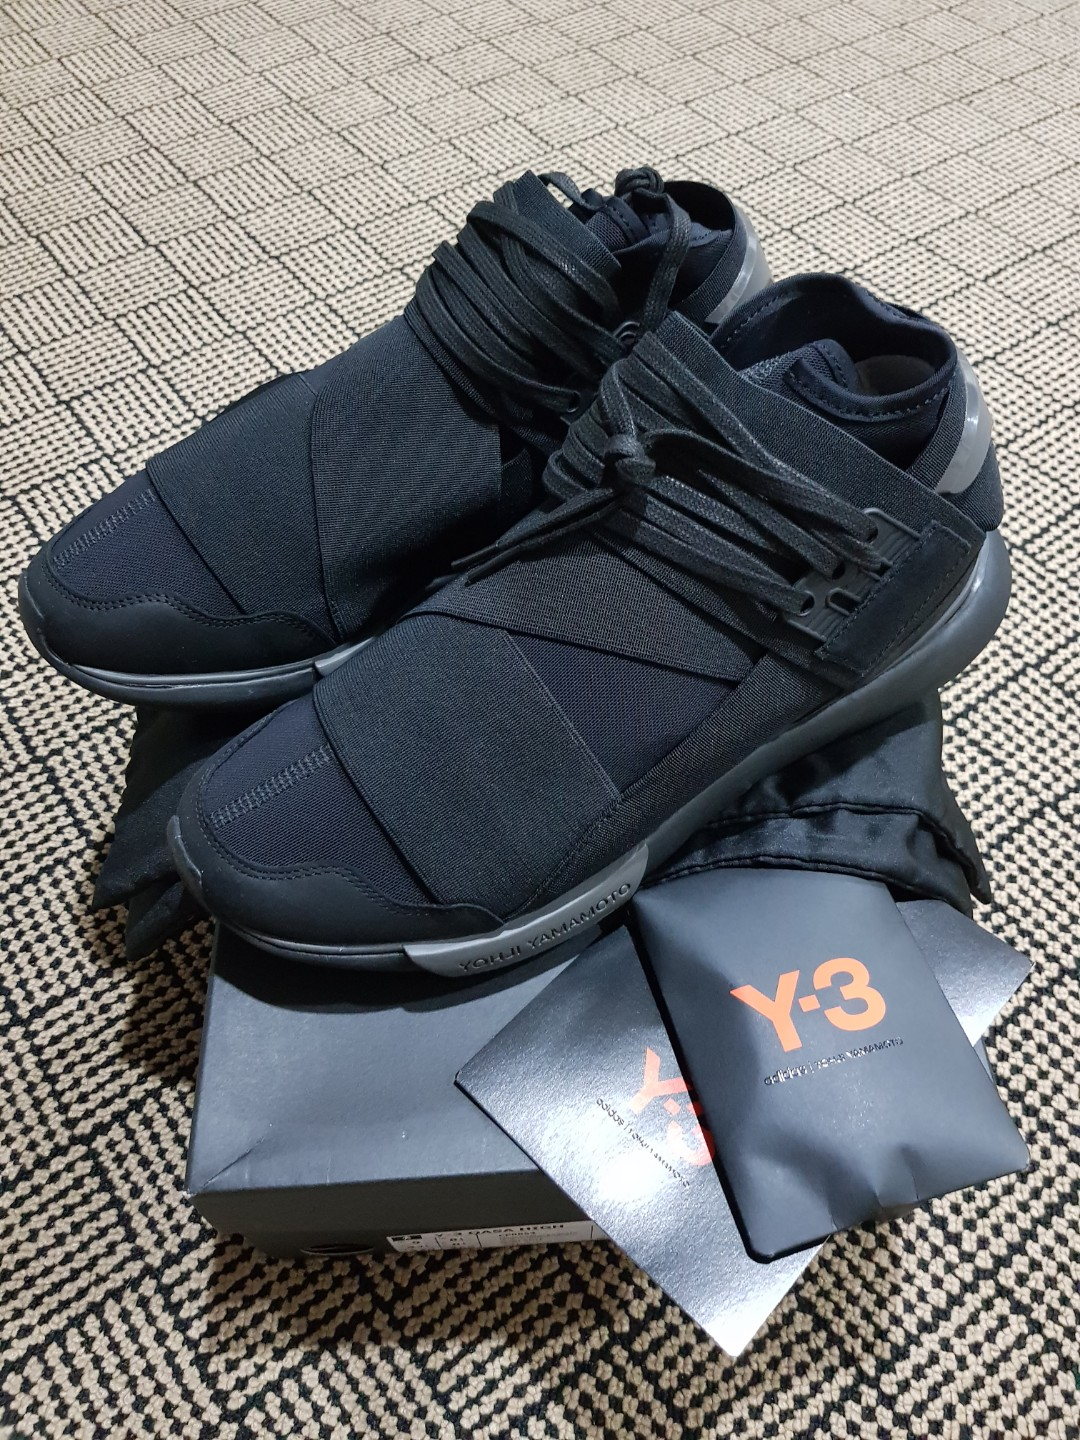 306c96289 Y-3 Qasa High Triple Black